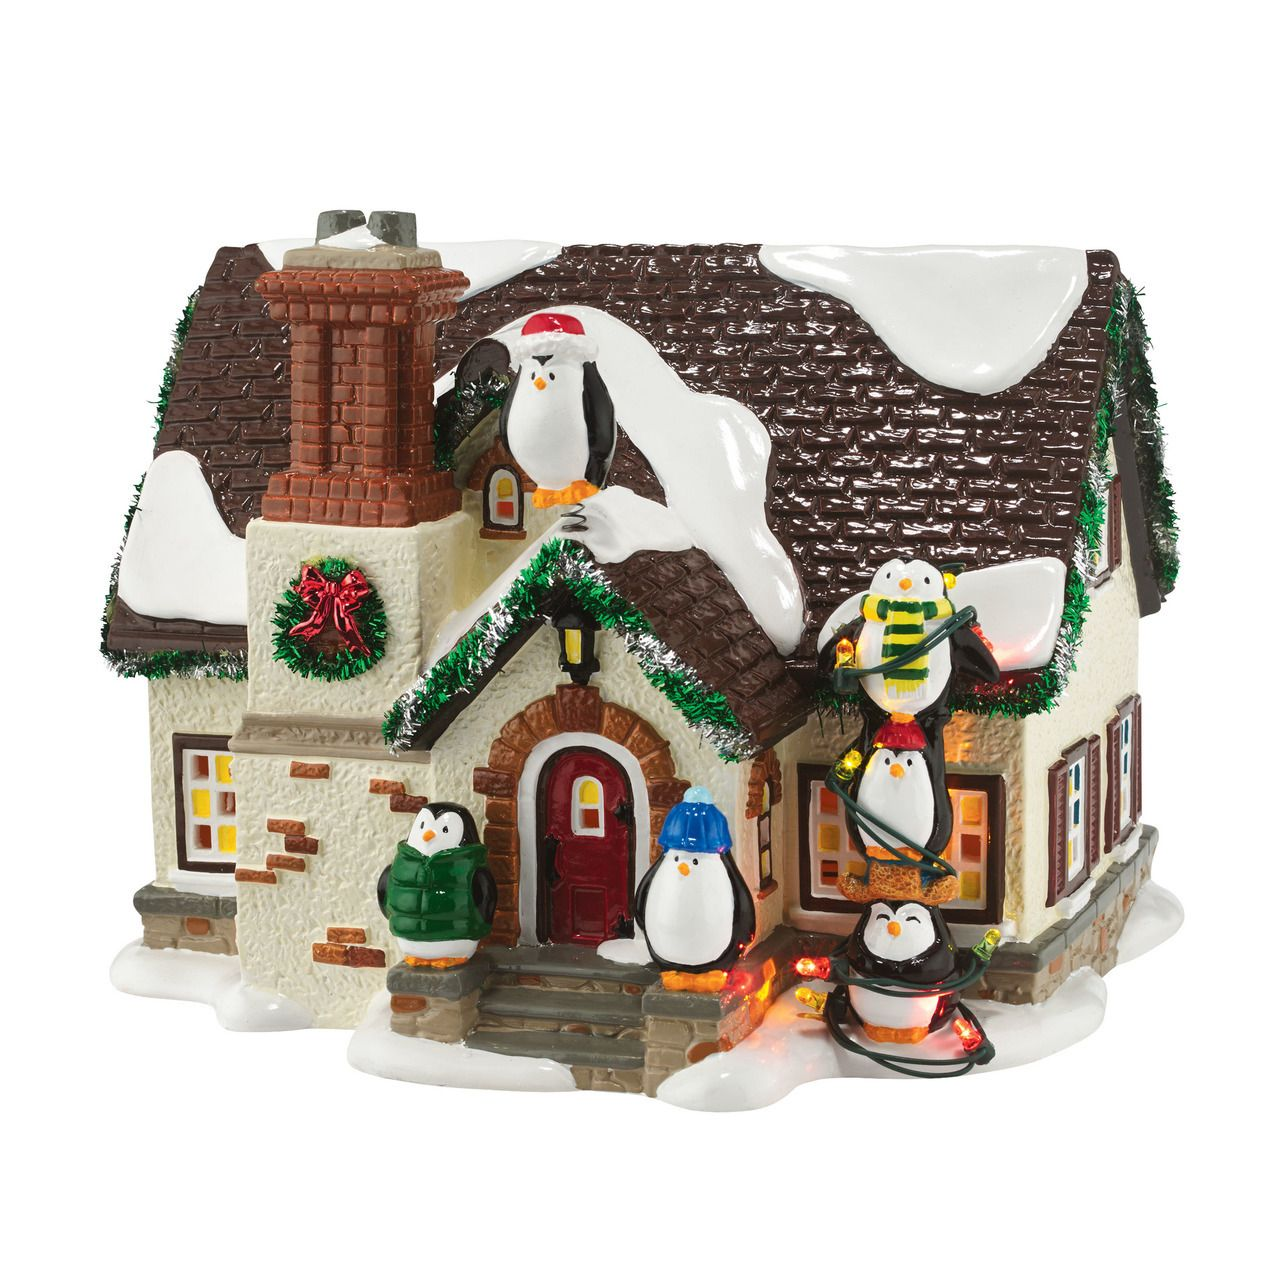 The Jolly Christmas Shop Department 56 Snow Village The Penguin House 4050980 125 00 Http Www T Snow Village Christmas Villages Christmas Village Houses